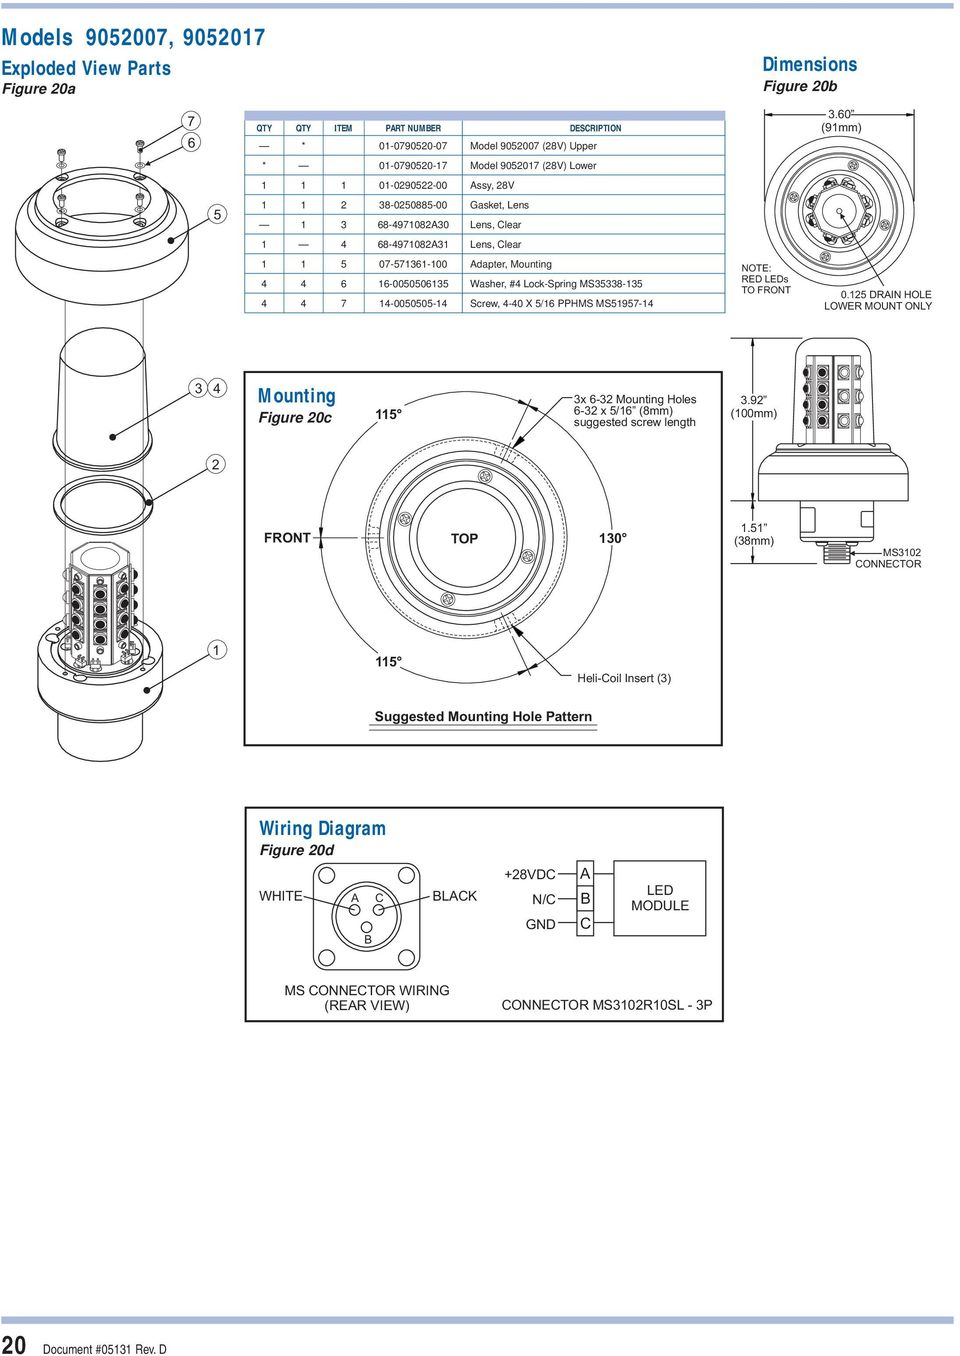 Anti Collision Light Systems Installation And Service Manual May Pdf Led Module Wiring Diagram Pphms Ms5957 4 Note Red Leds To Front 05 Drain Hole Lower Mount Only